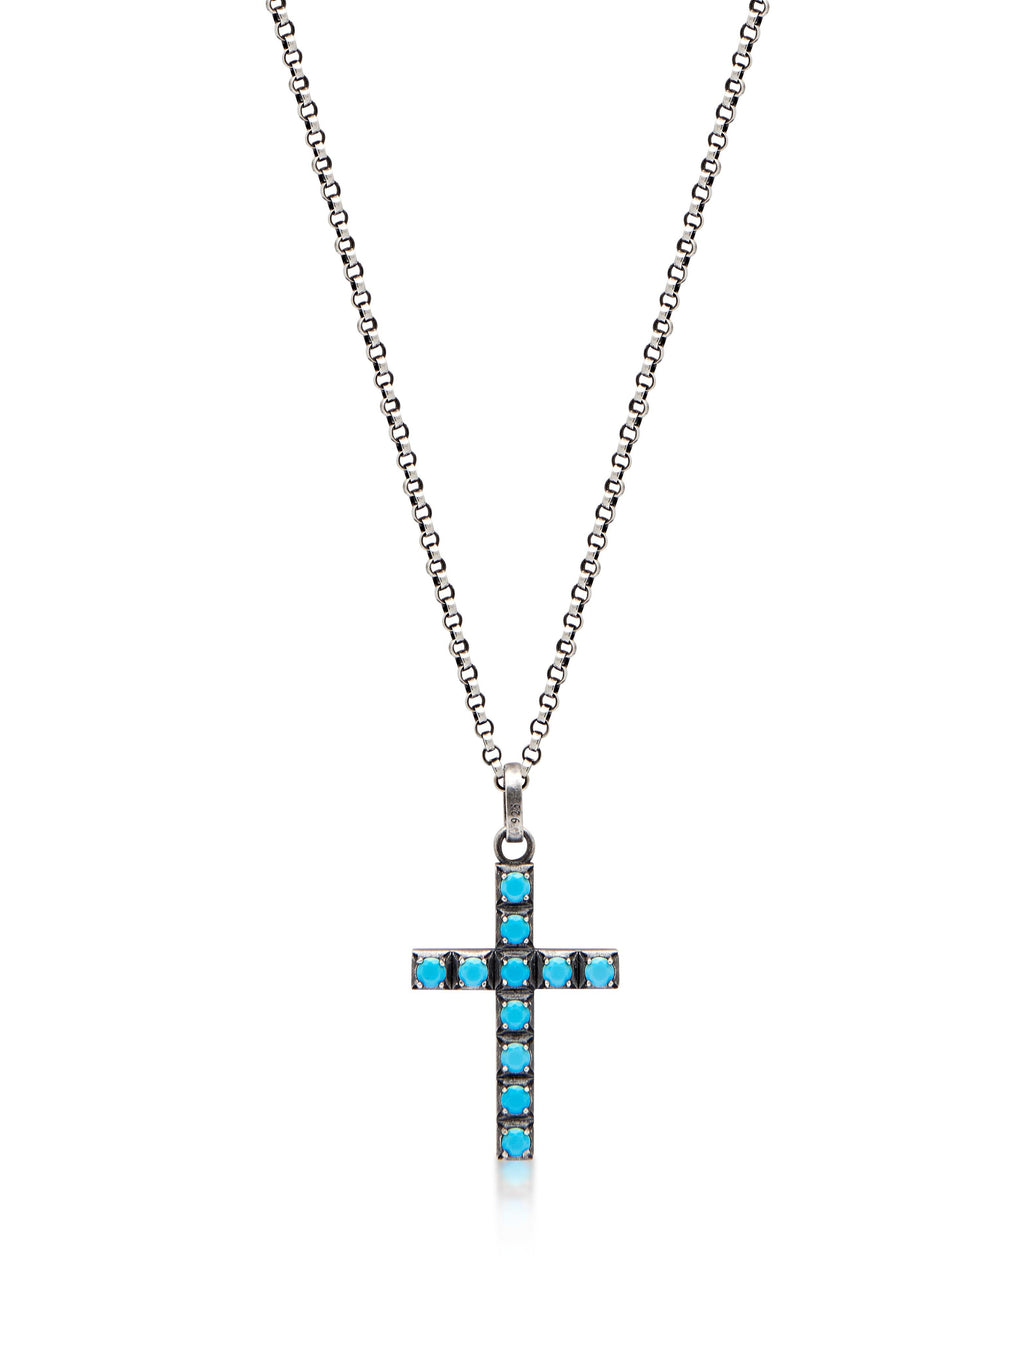 Women's Silver Necklace with Turquoise Cross Pendant